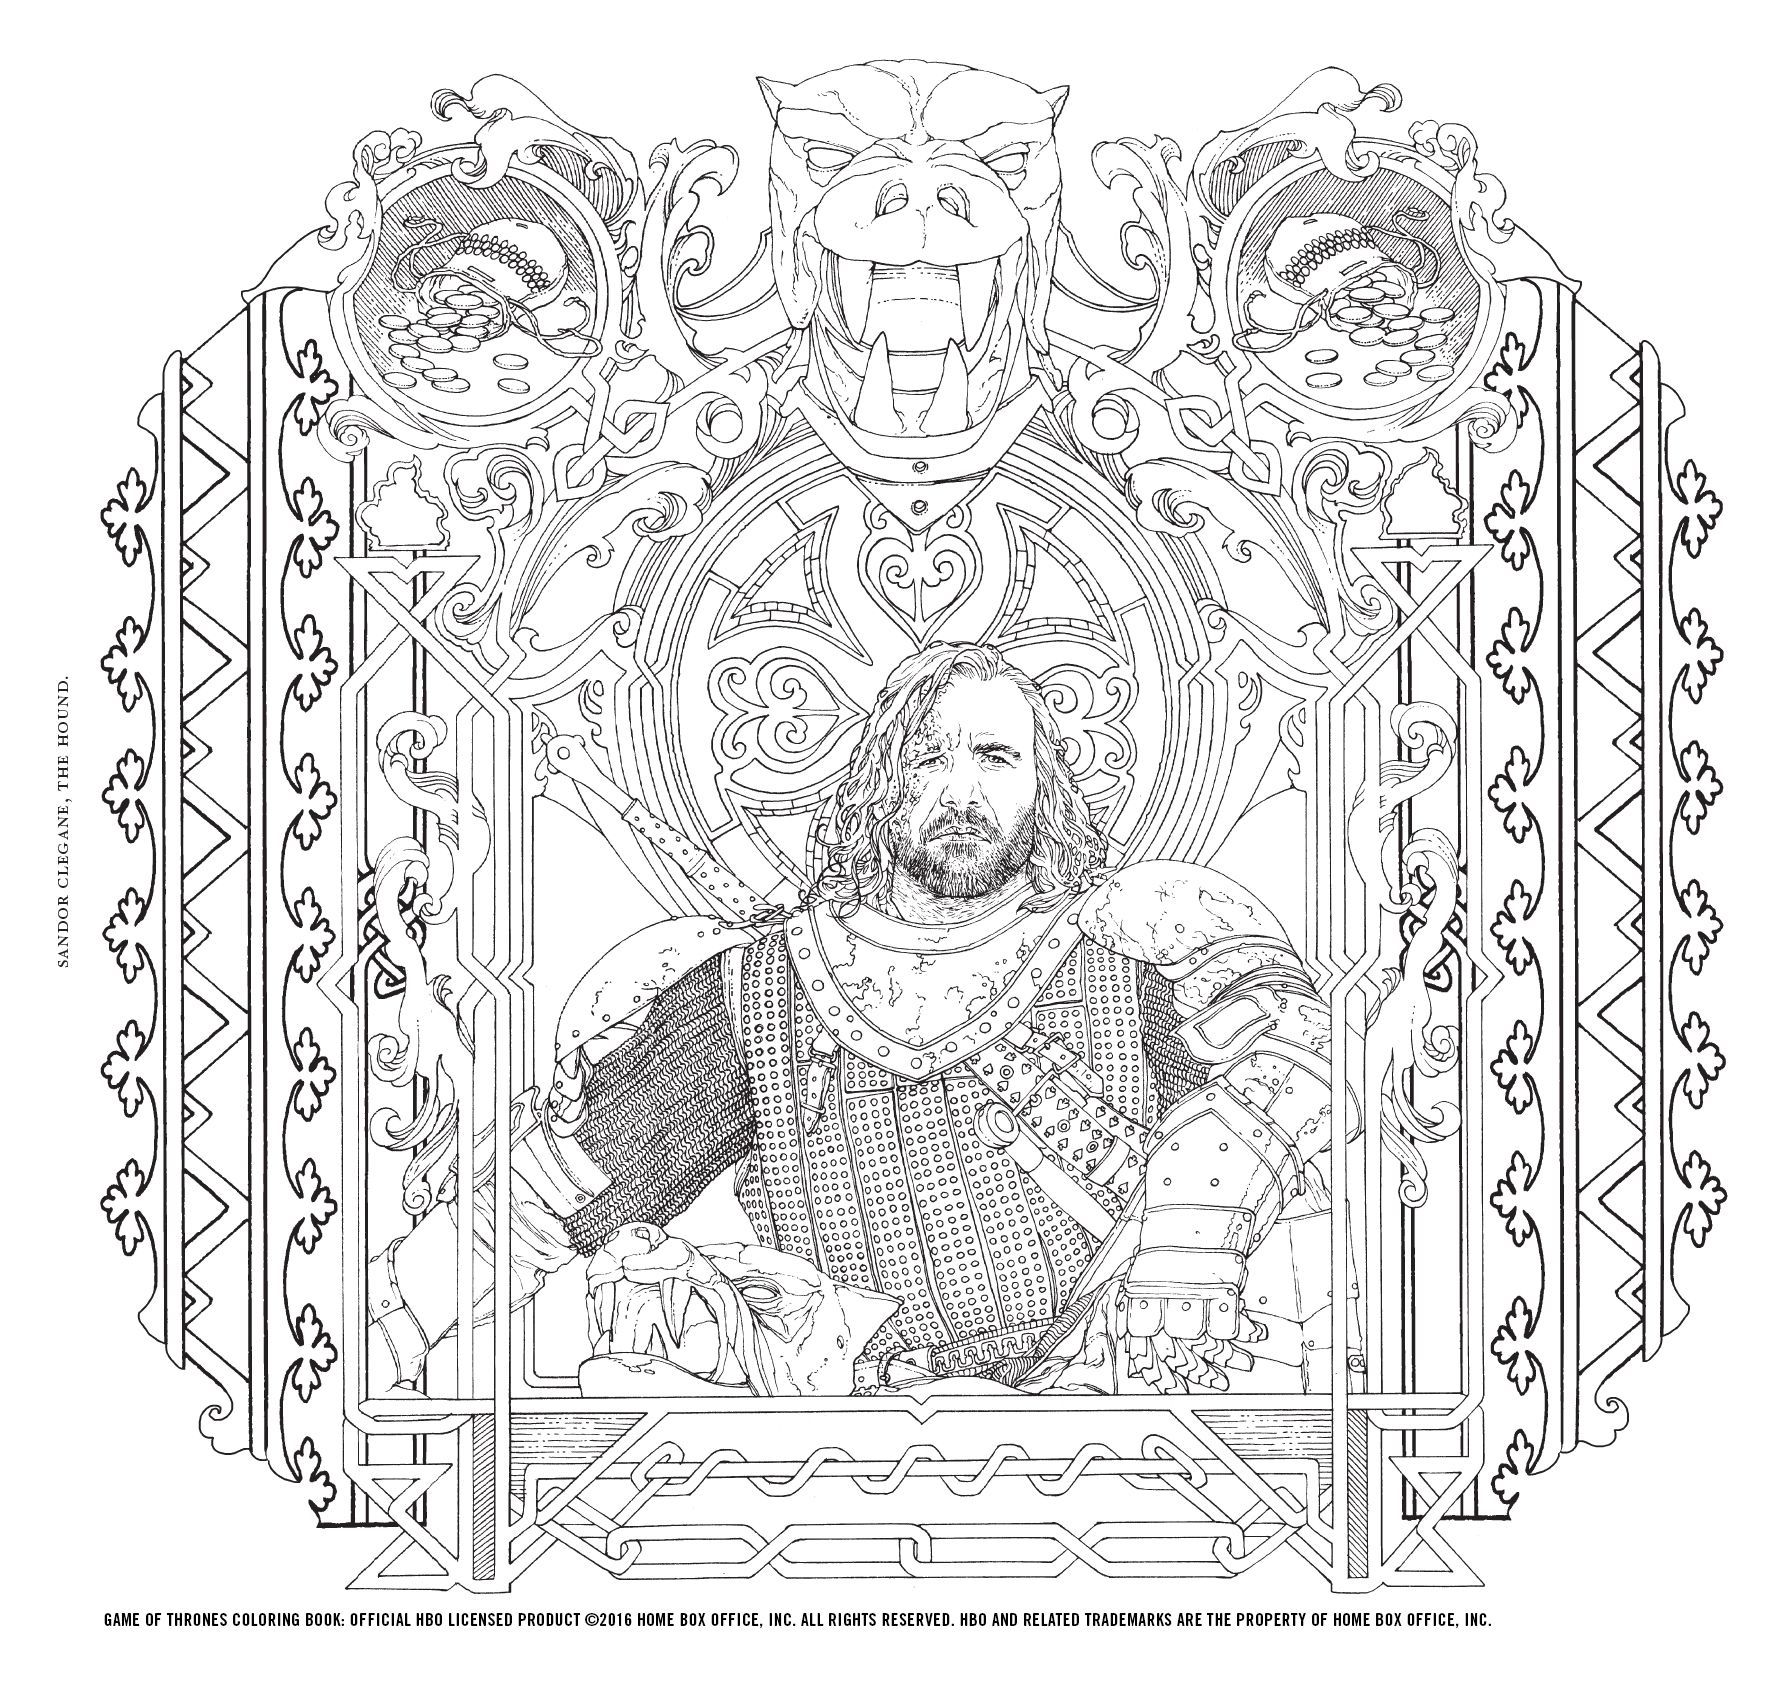 Game of Thrones Coloring Book   Coloring books, Color ...